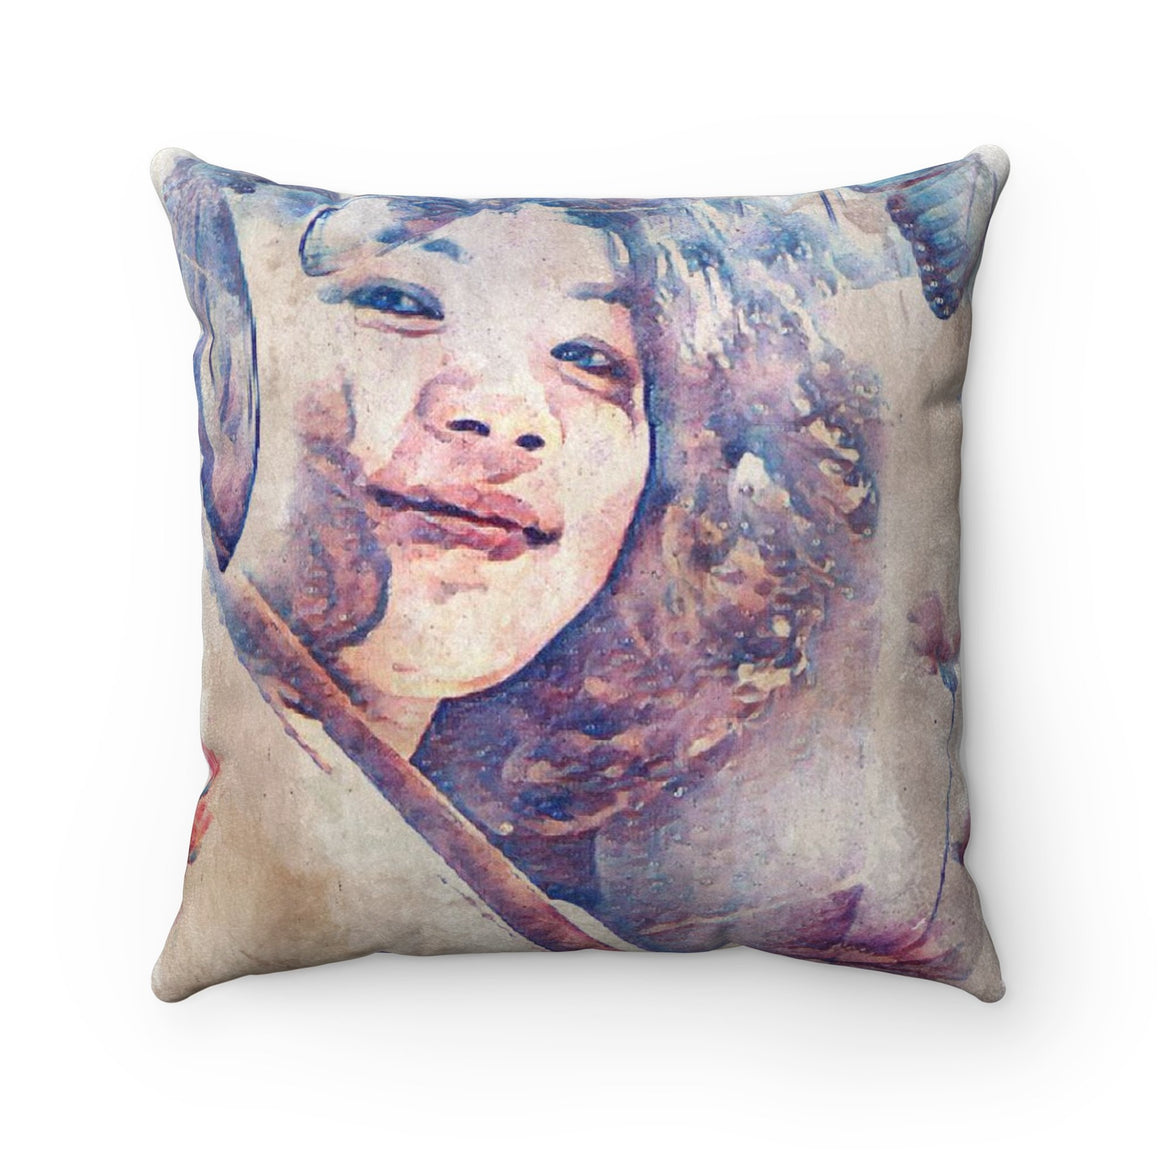 Levi Thang Vintage Face Design V Faux Suede Square Pillow Case